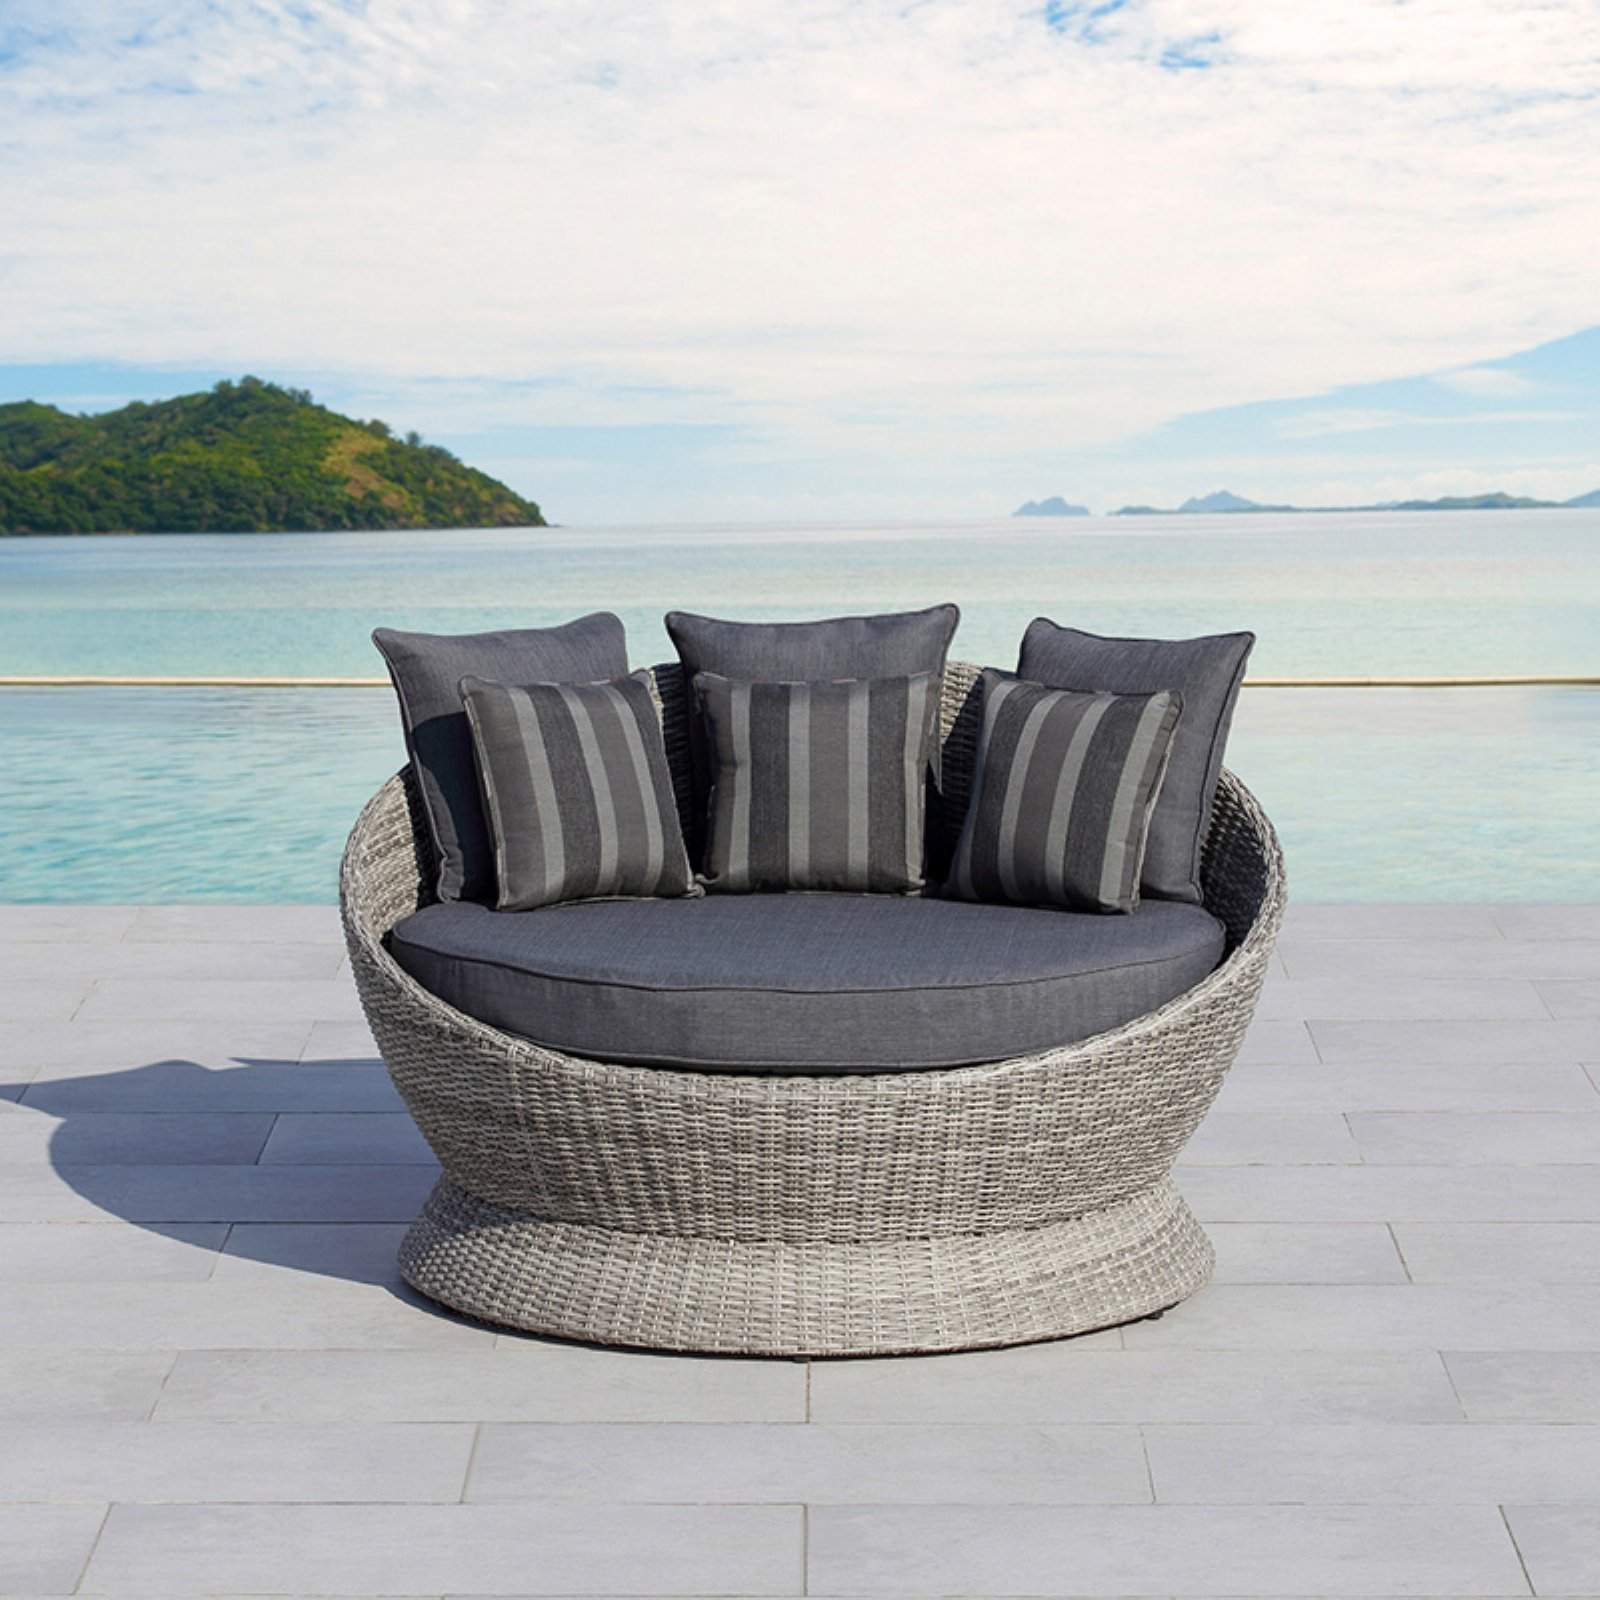 Ove Decors Brisbane Gray Wicker Outdoor Daybed